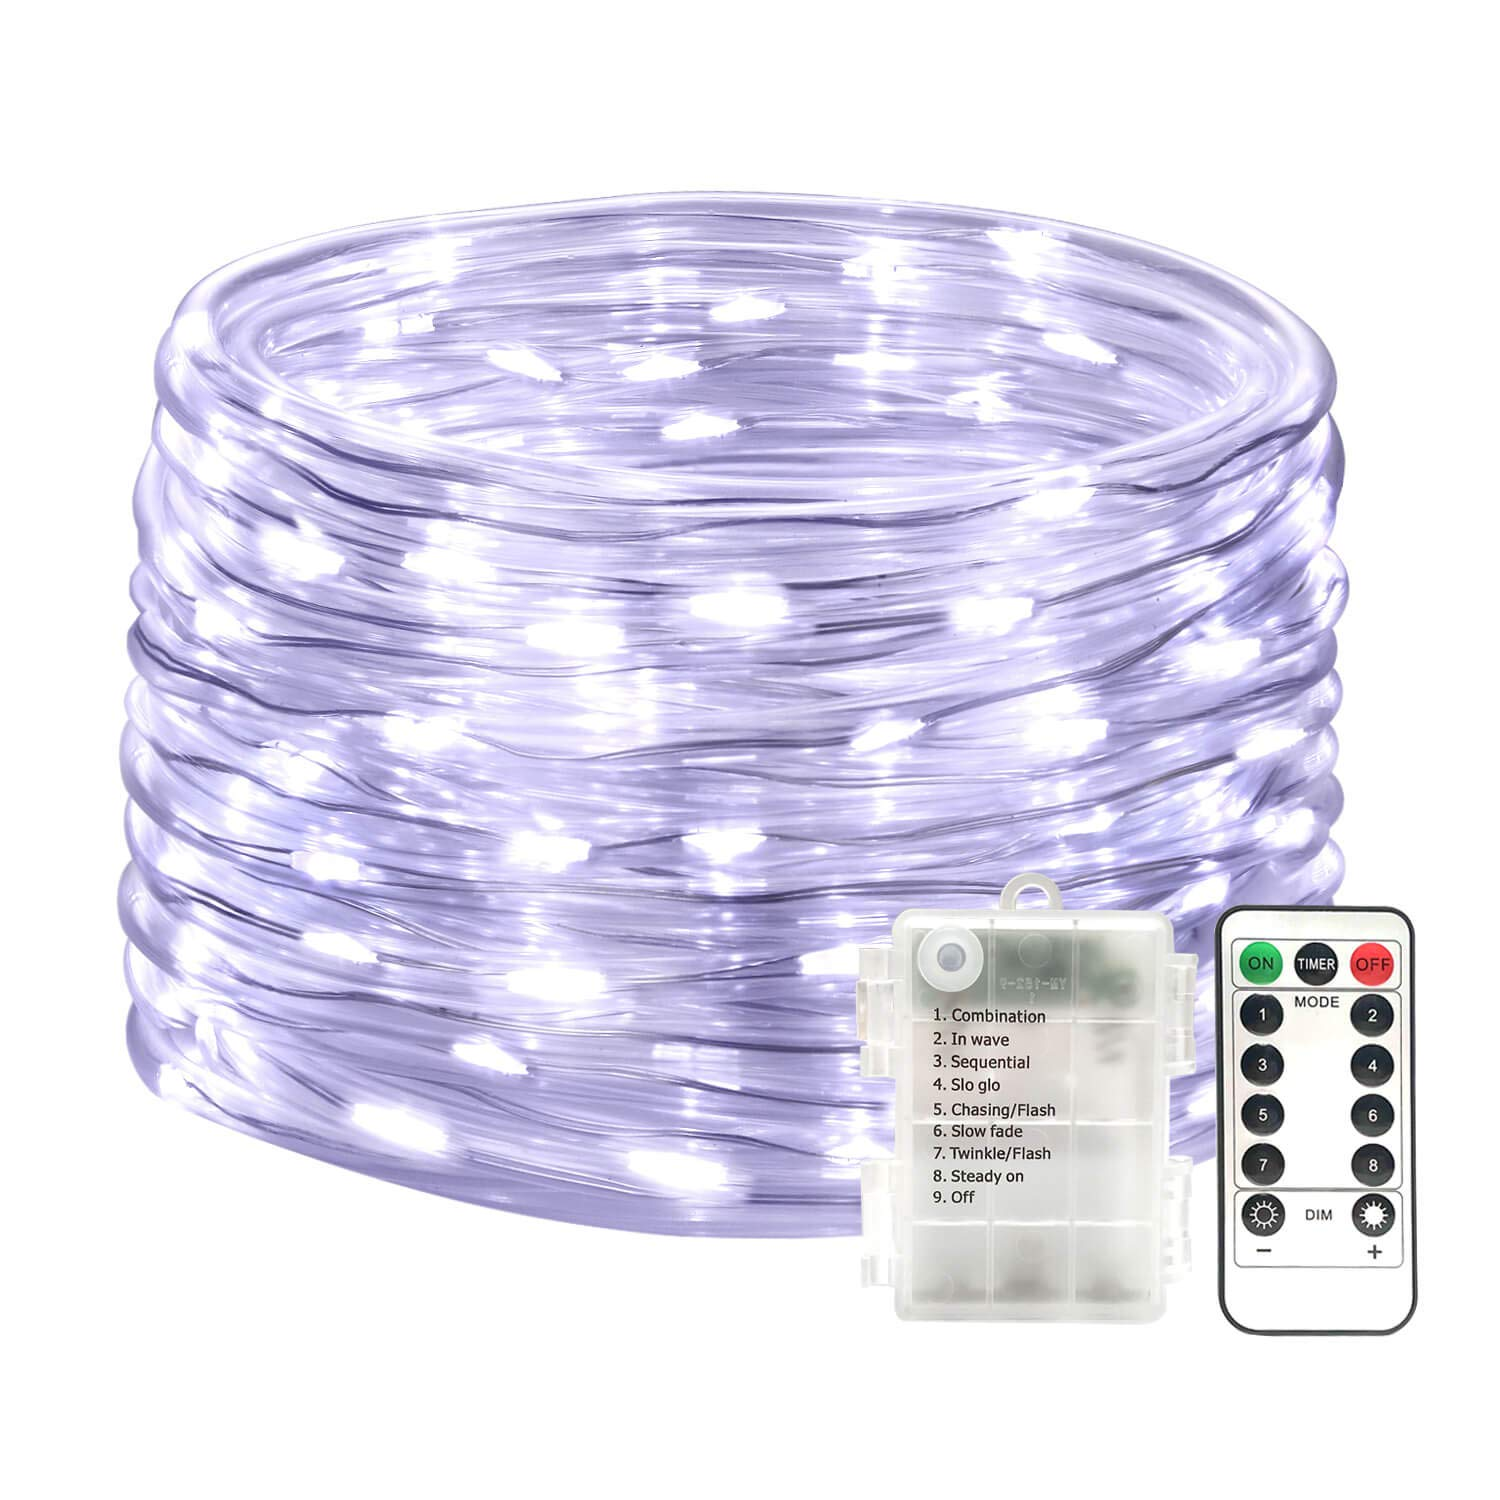 SEMILITS Outdoor String Lights 100LED 33Ft Battery Operated LED Rope Lights with Remote Indoor Timer Fairy Lights for Patio Easter Christmas Party White